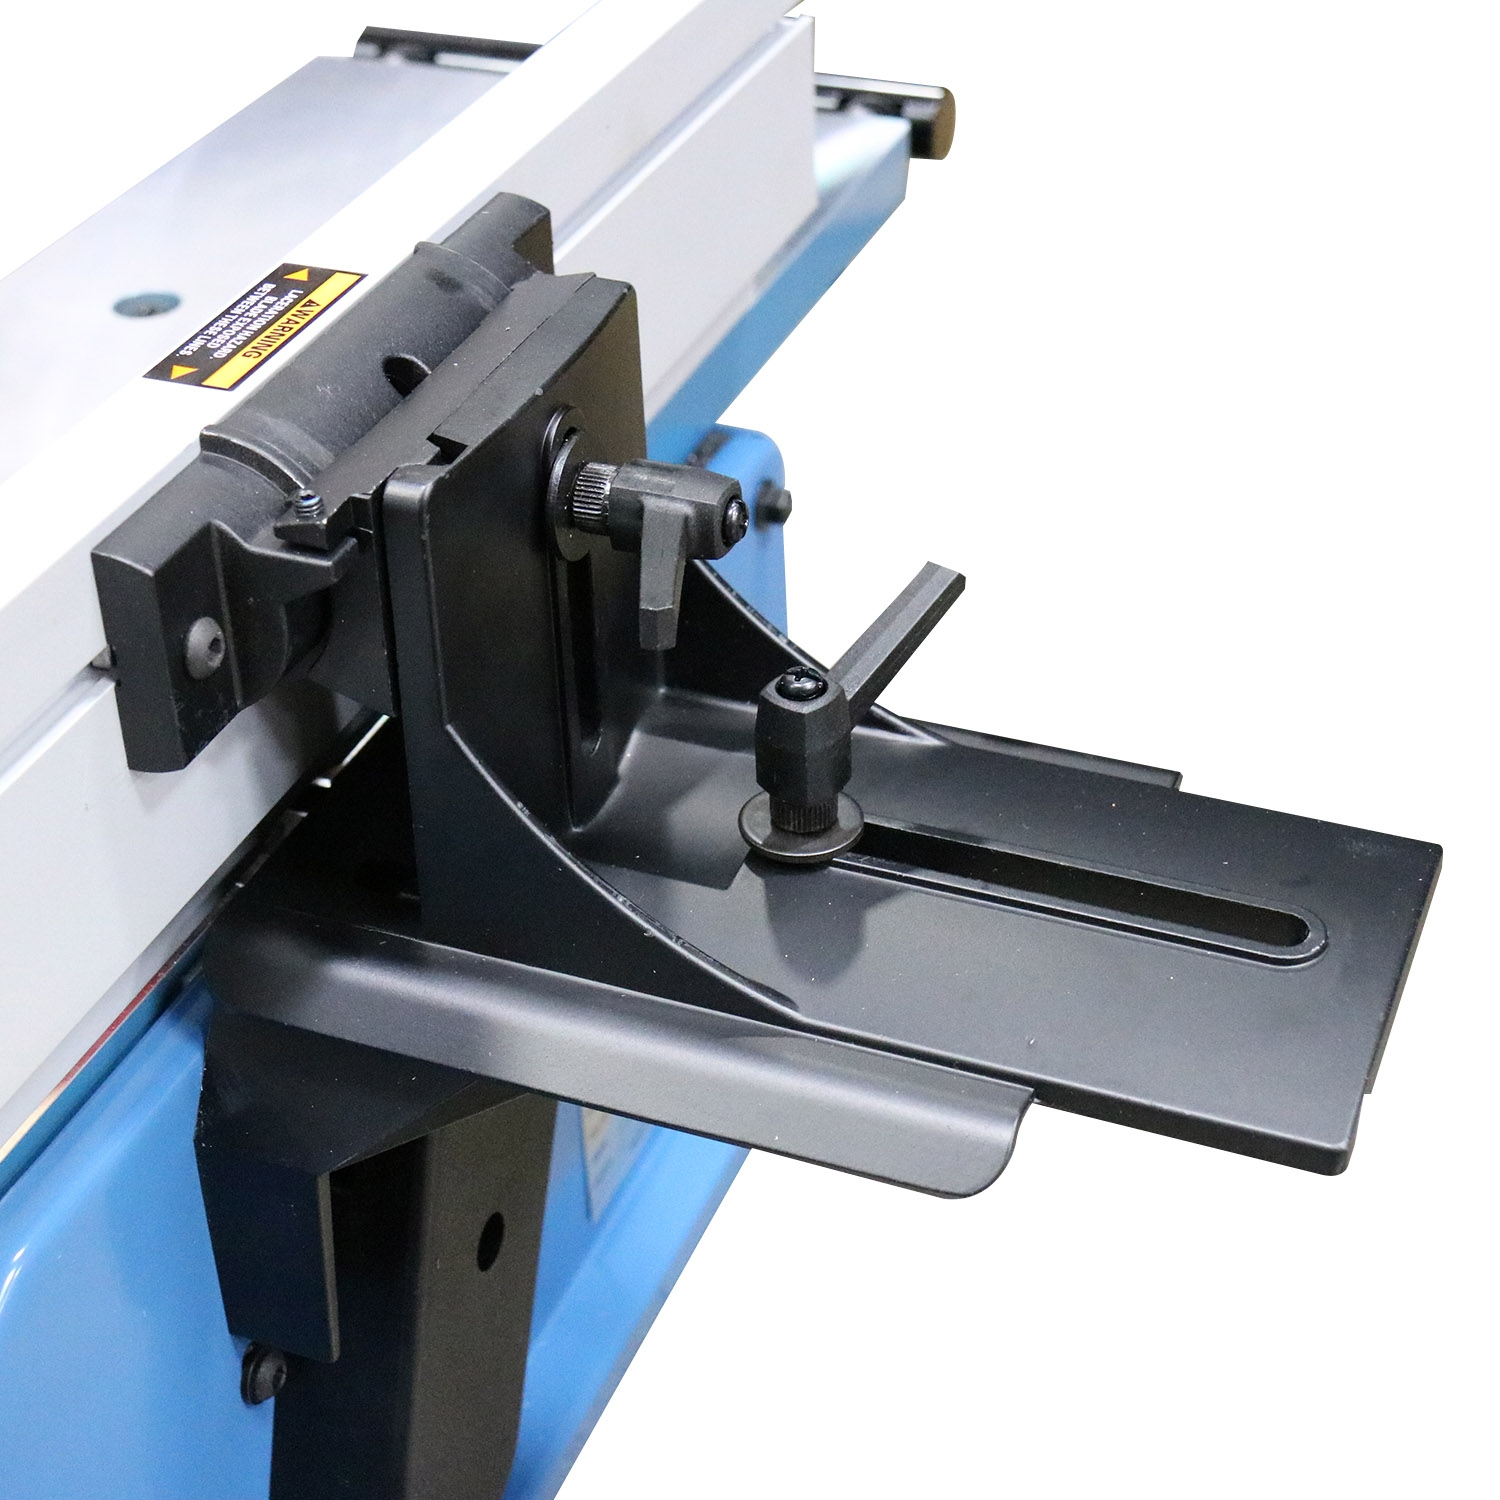 Benchtop Wood Jointer - IJ-833